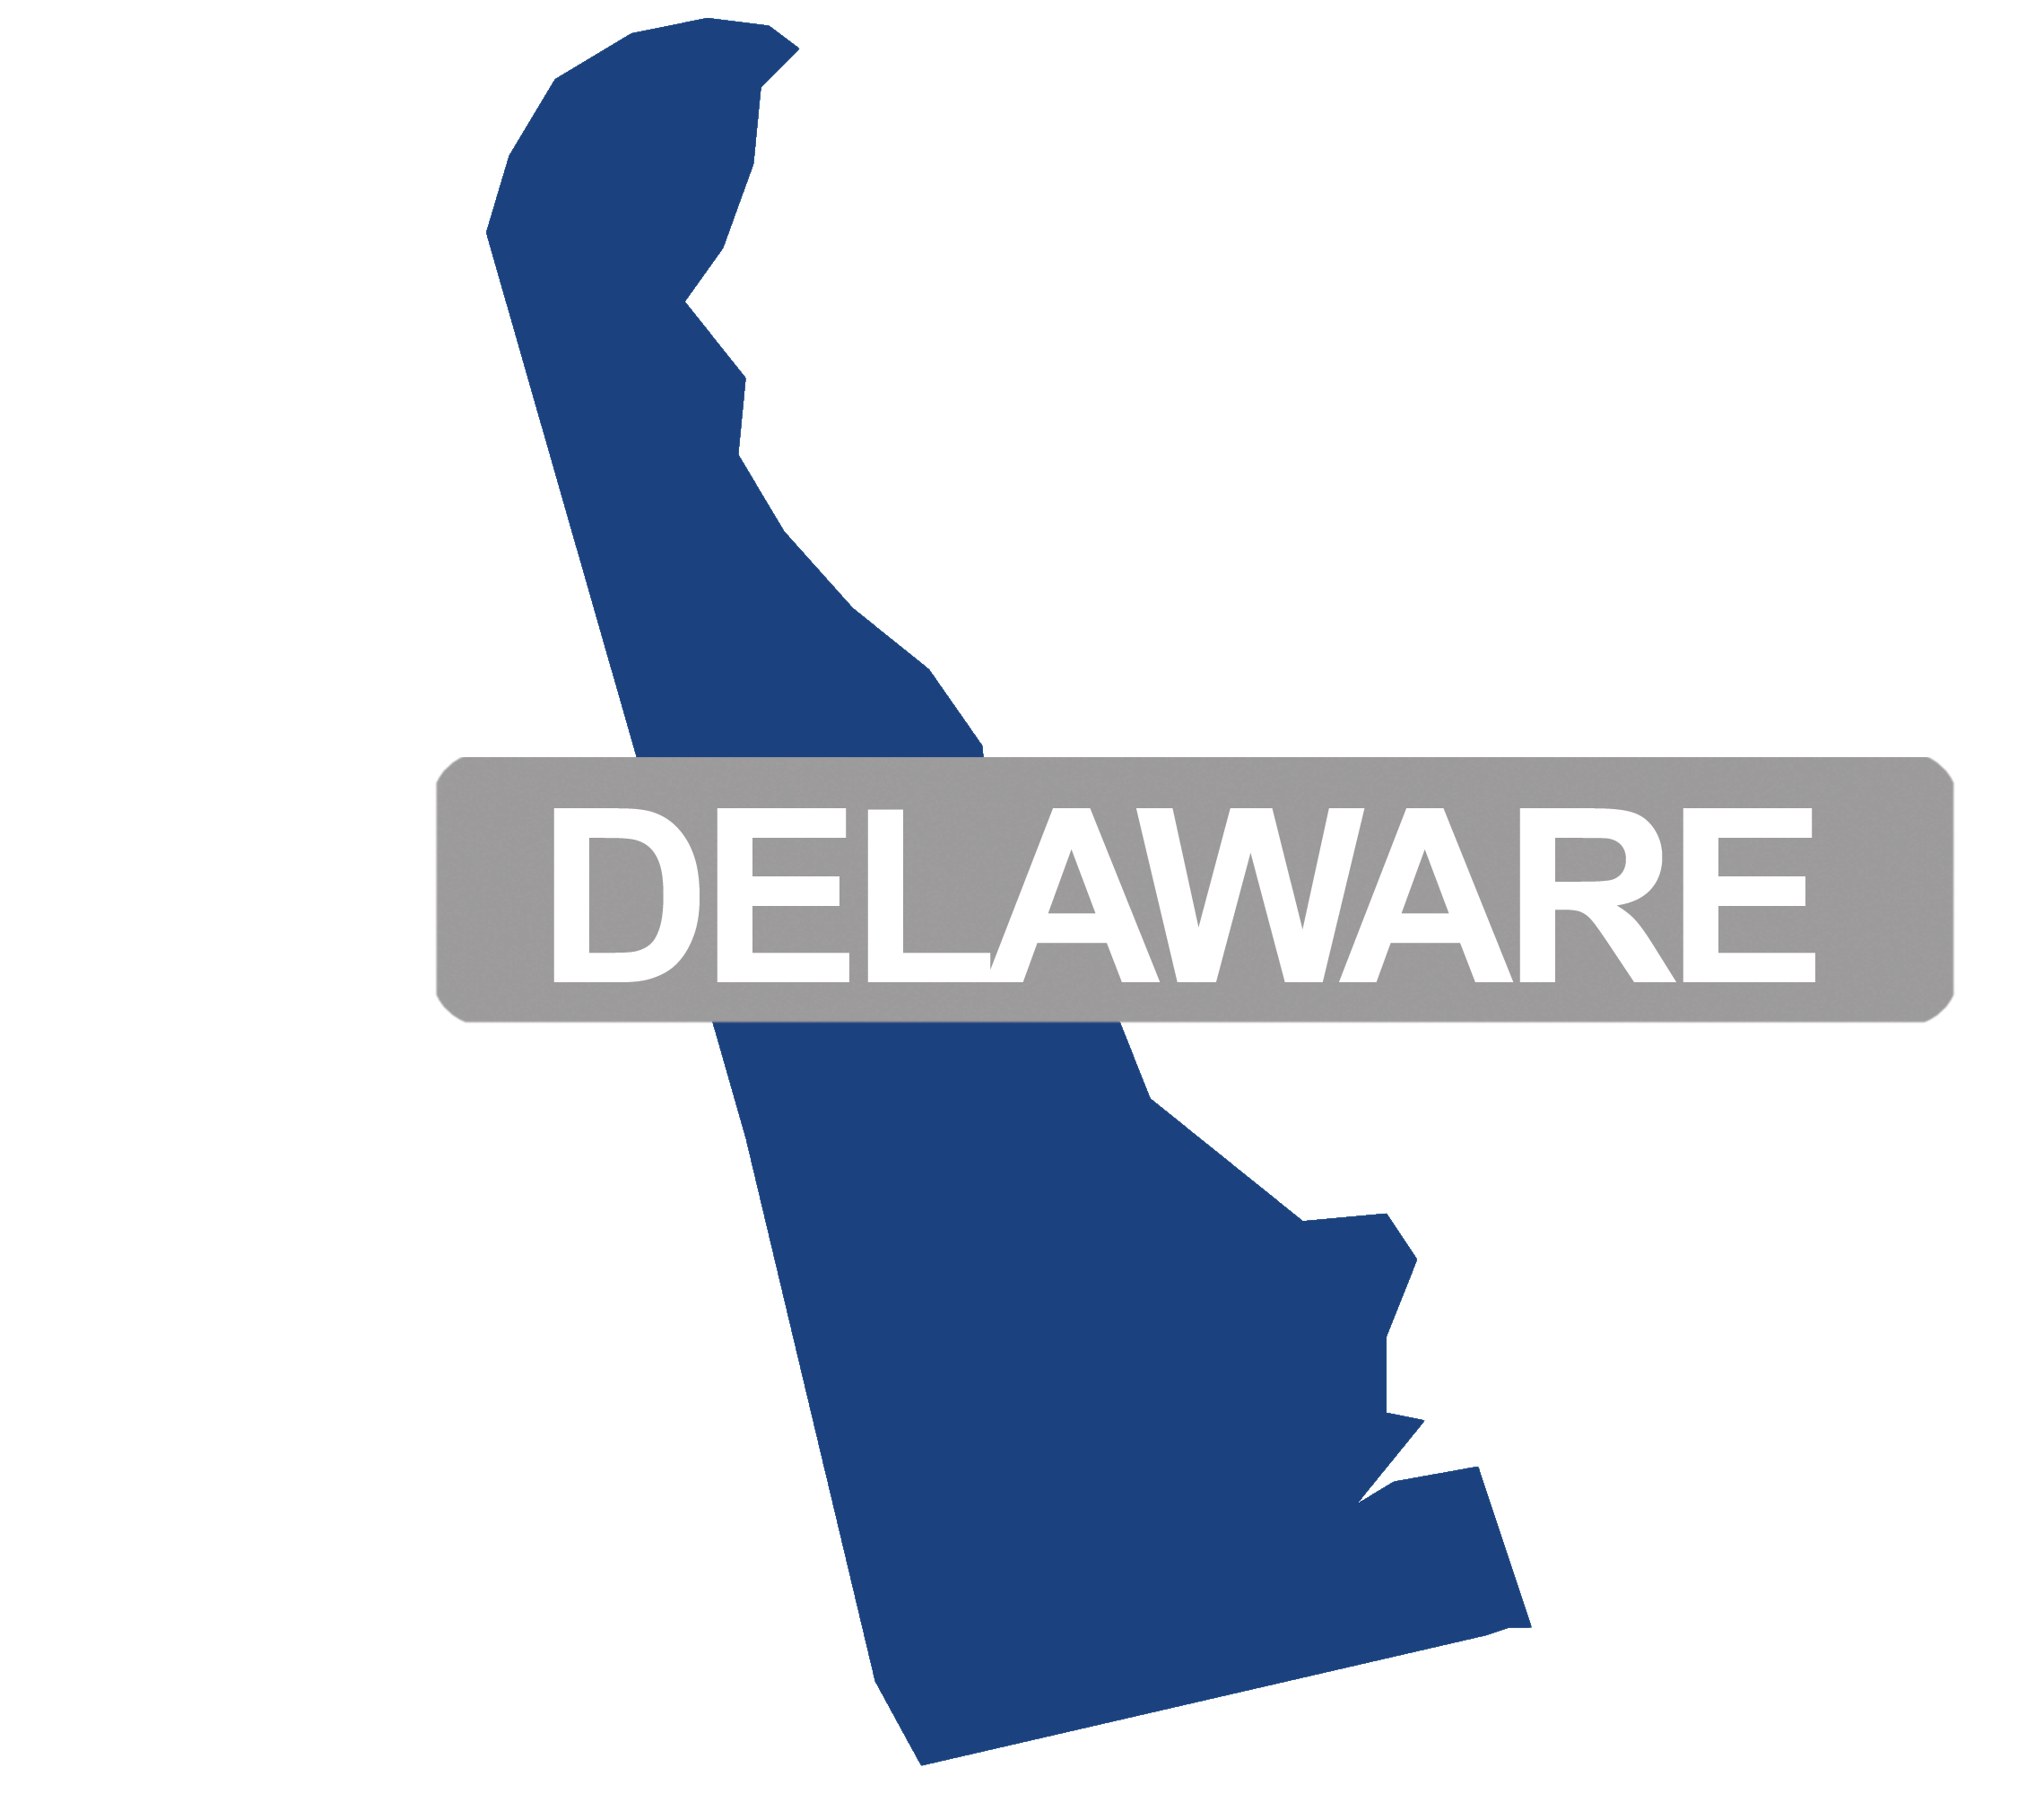 Delaware Electrical Continuing Education for Journeyman, Master Electricians, and Electrical Contractors